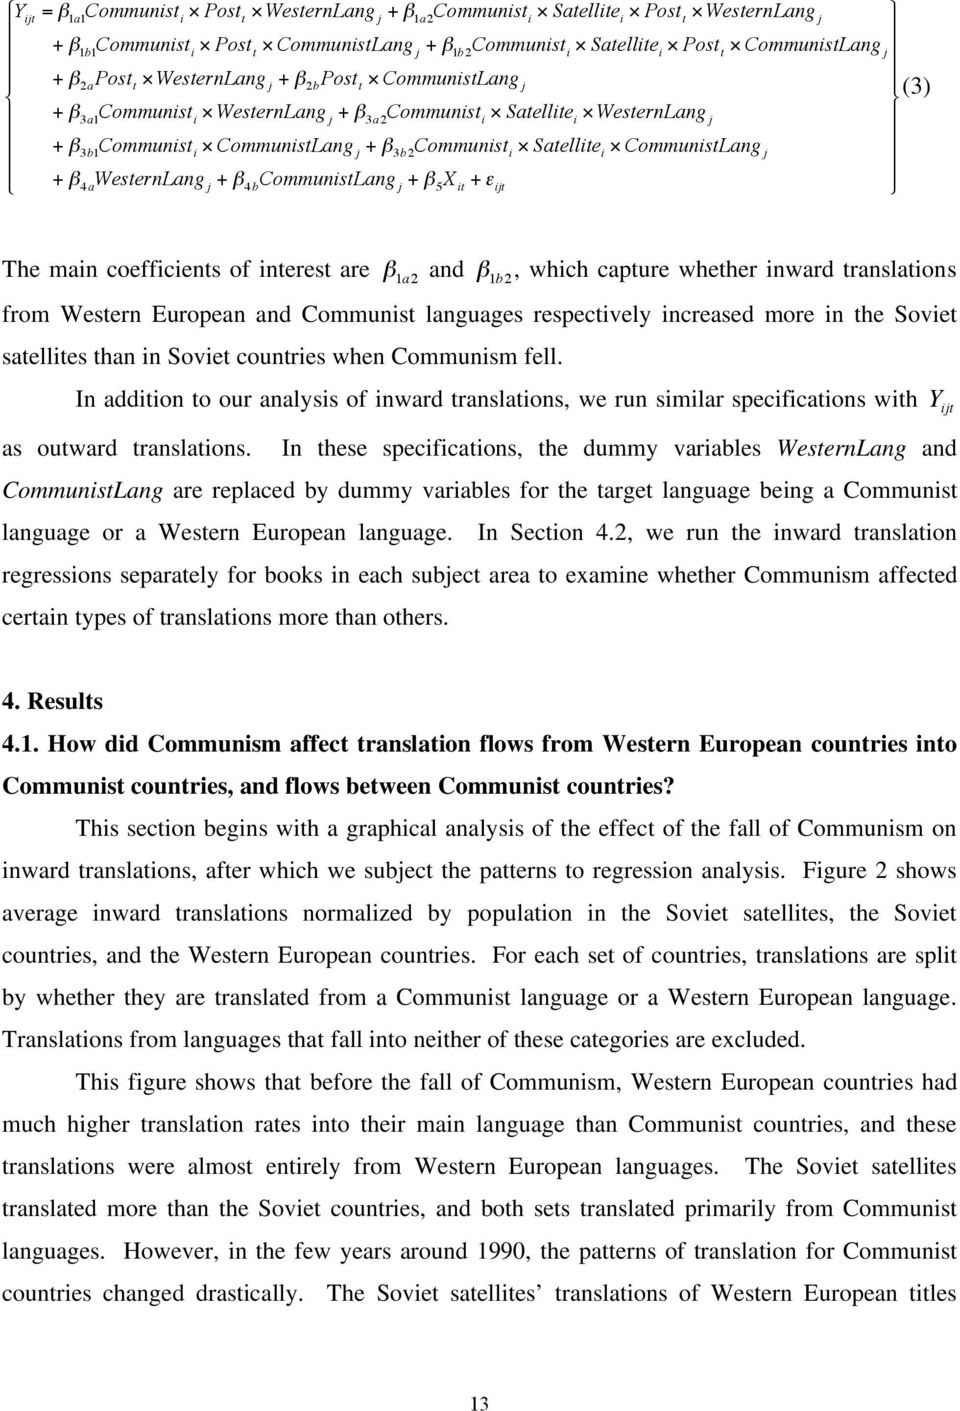 CommunistLang j + 4 a WesternLang j + 4 b CommunistLang j + 5 X it + ijt The main coefficients of interest are 1a 2 and 1b 2, which capture whether inward translations from Western European and